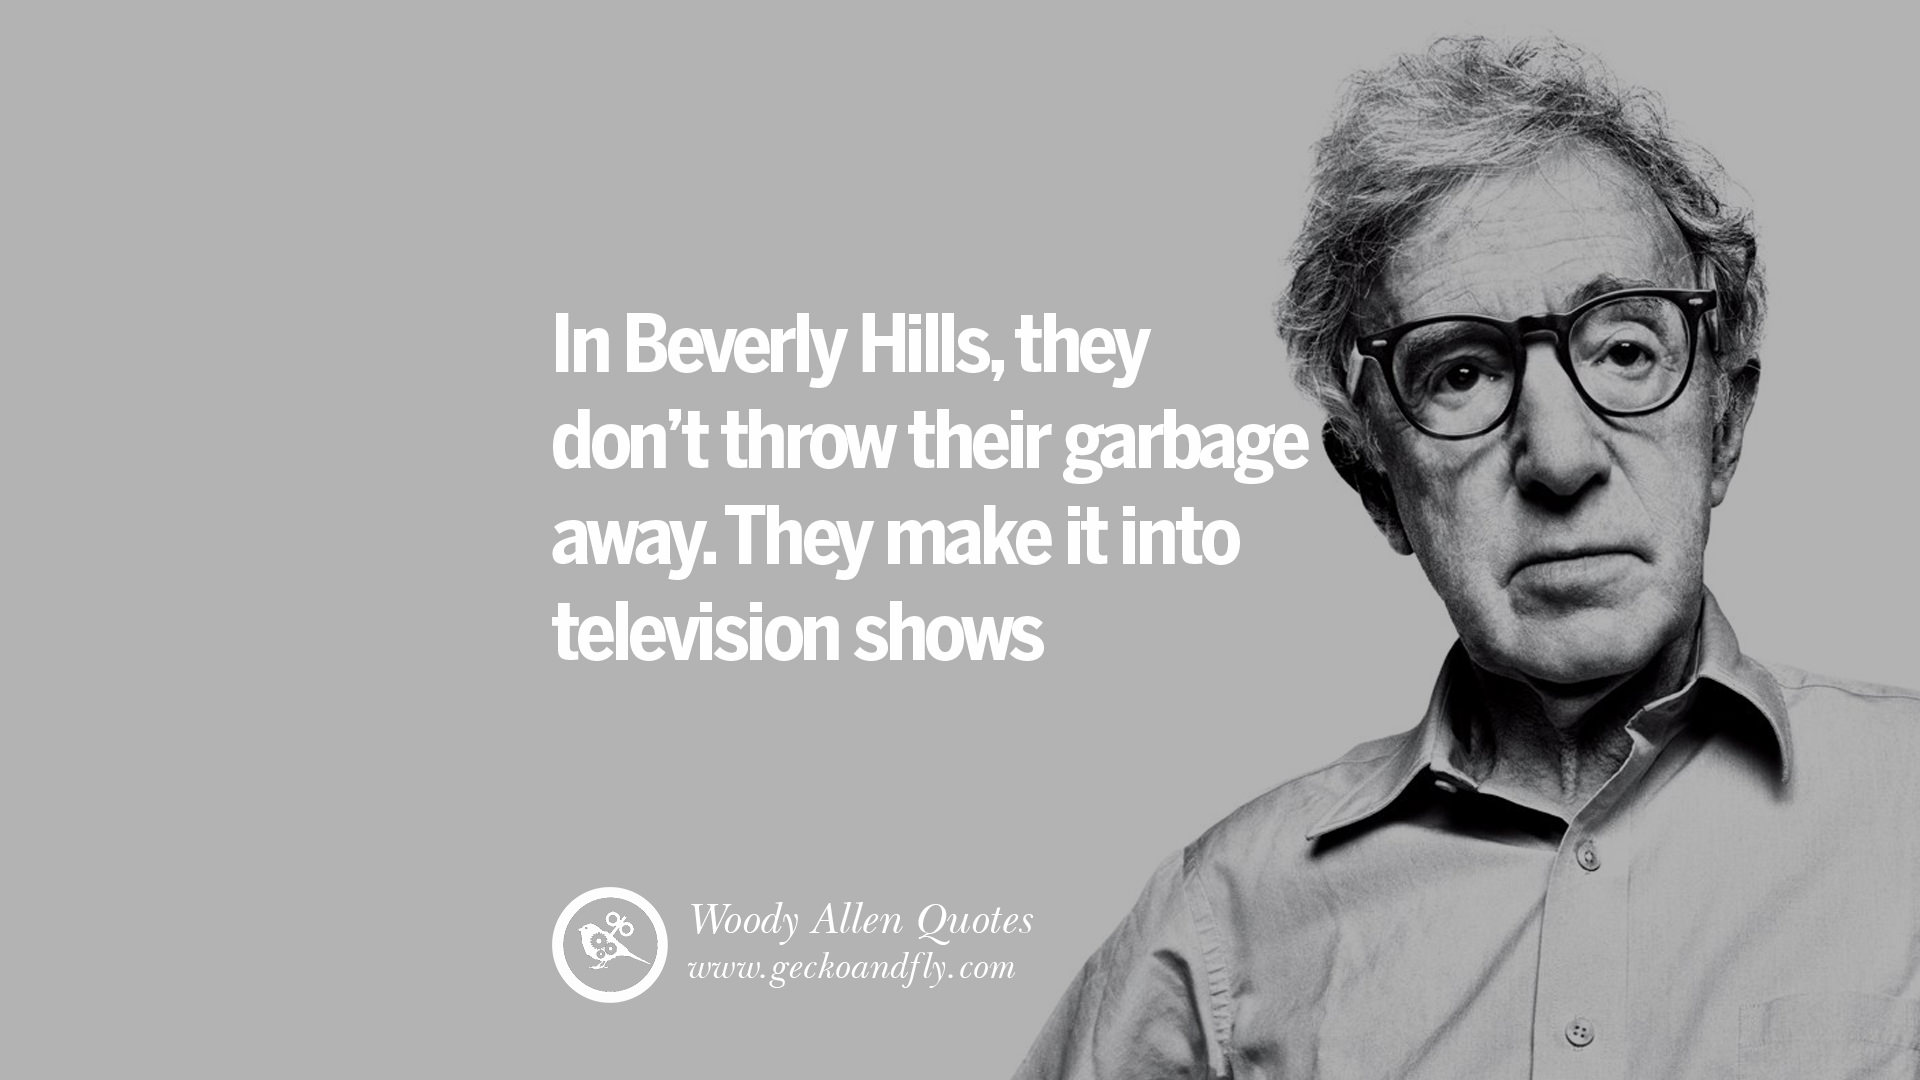 Poverty Wallpapers With Quotes 24 Woody Allen Quotes On Movies Films Life Religion And